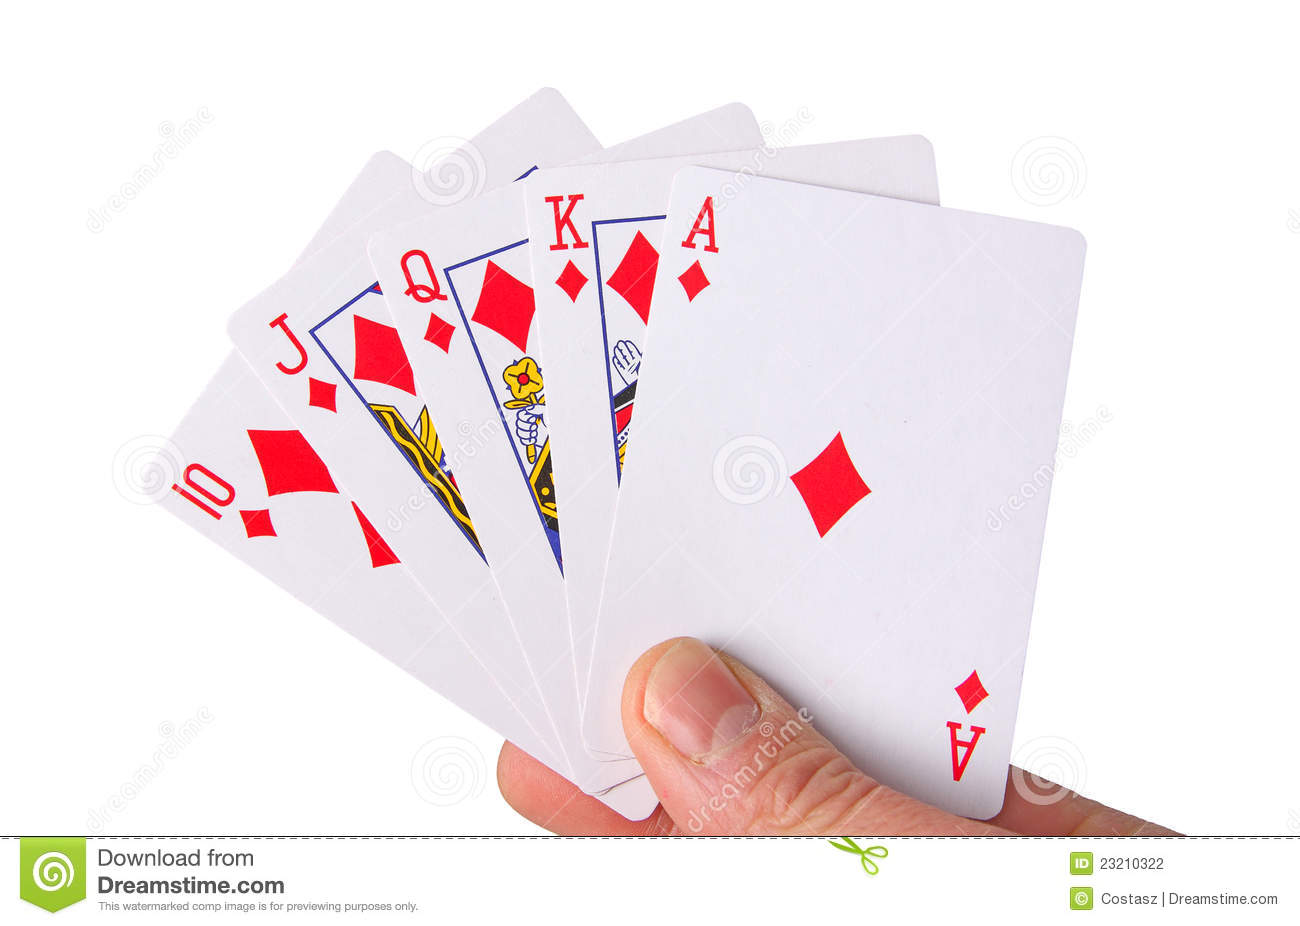 Stock Photography: Royal flush. Image: 23210322